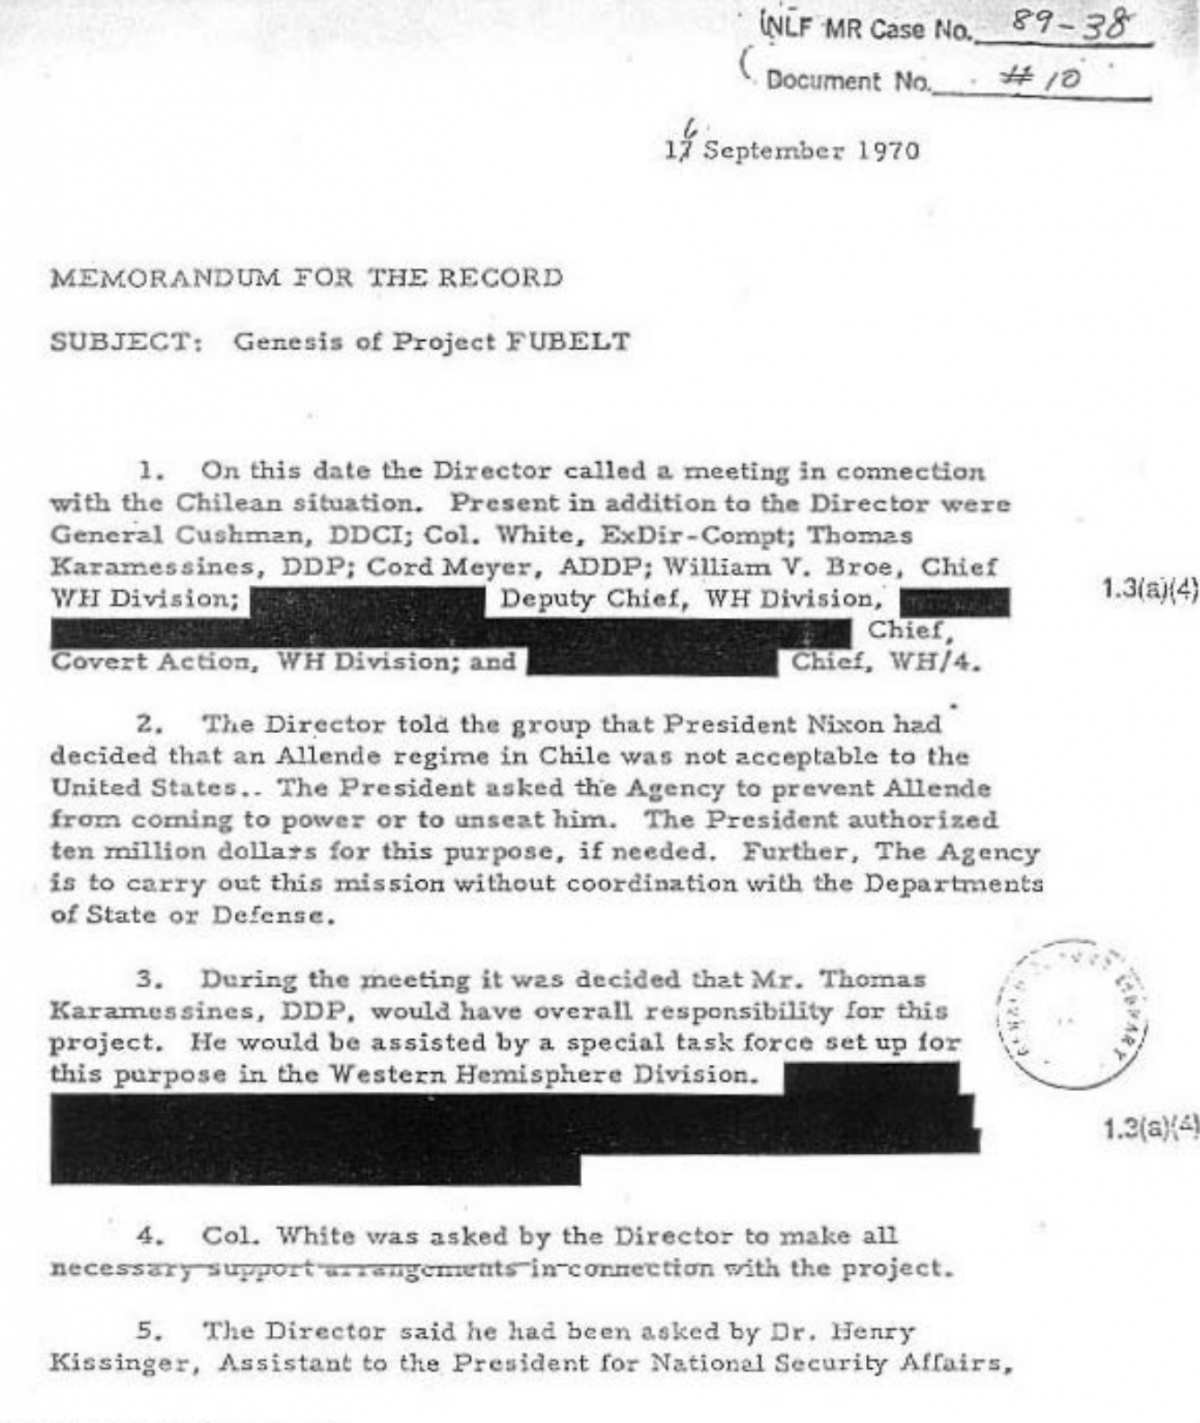 CIA memorandum on Project FUBELT, 16 September 1970.